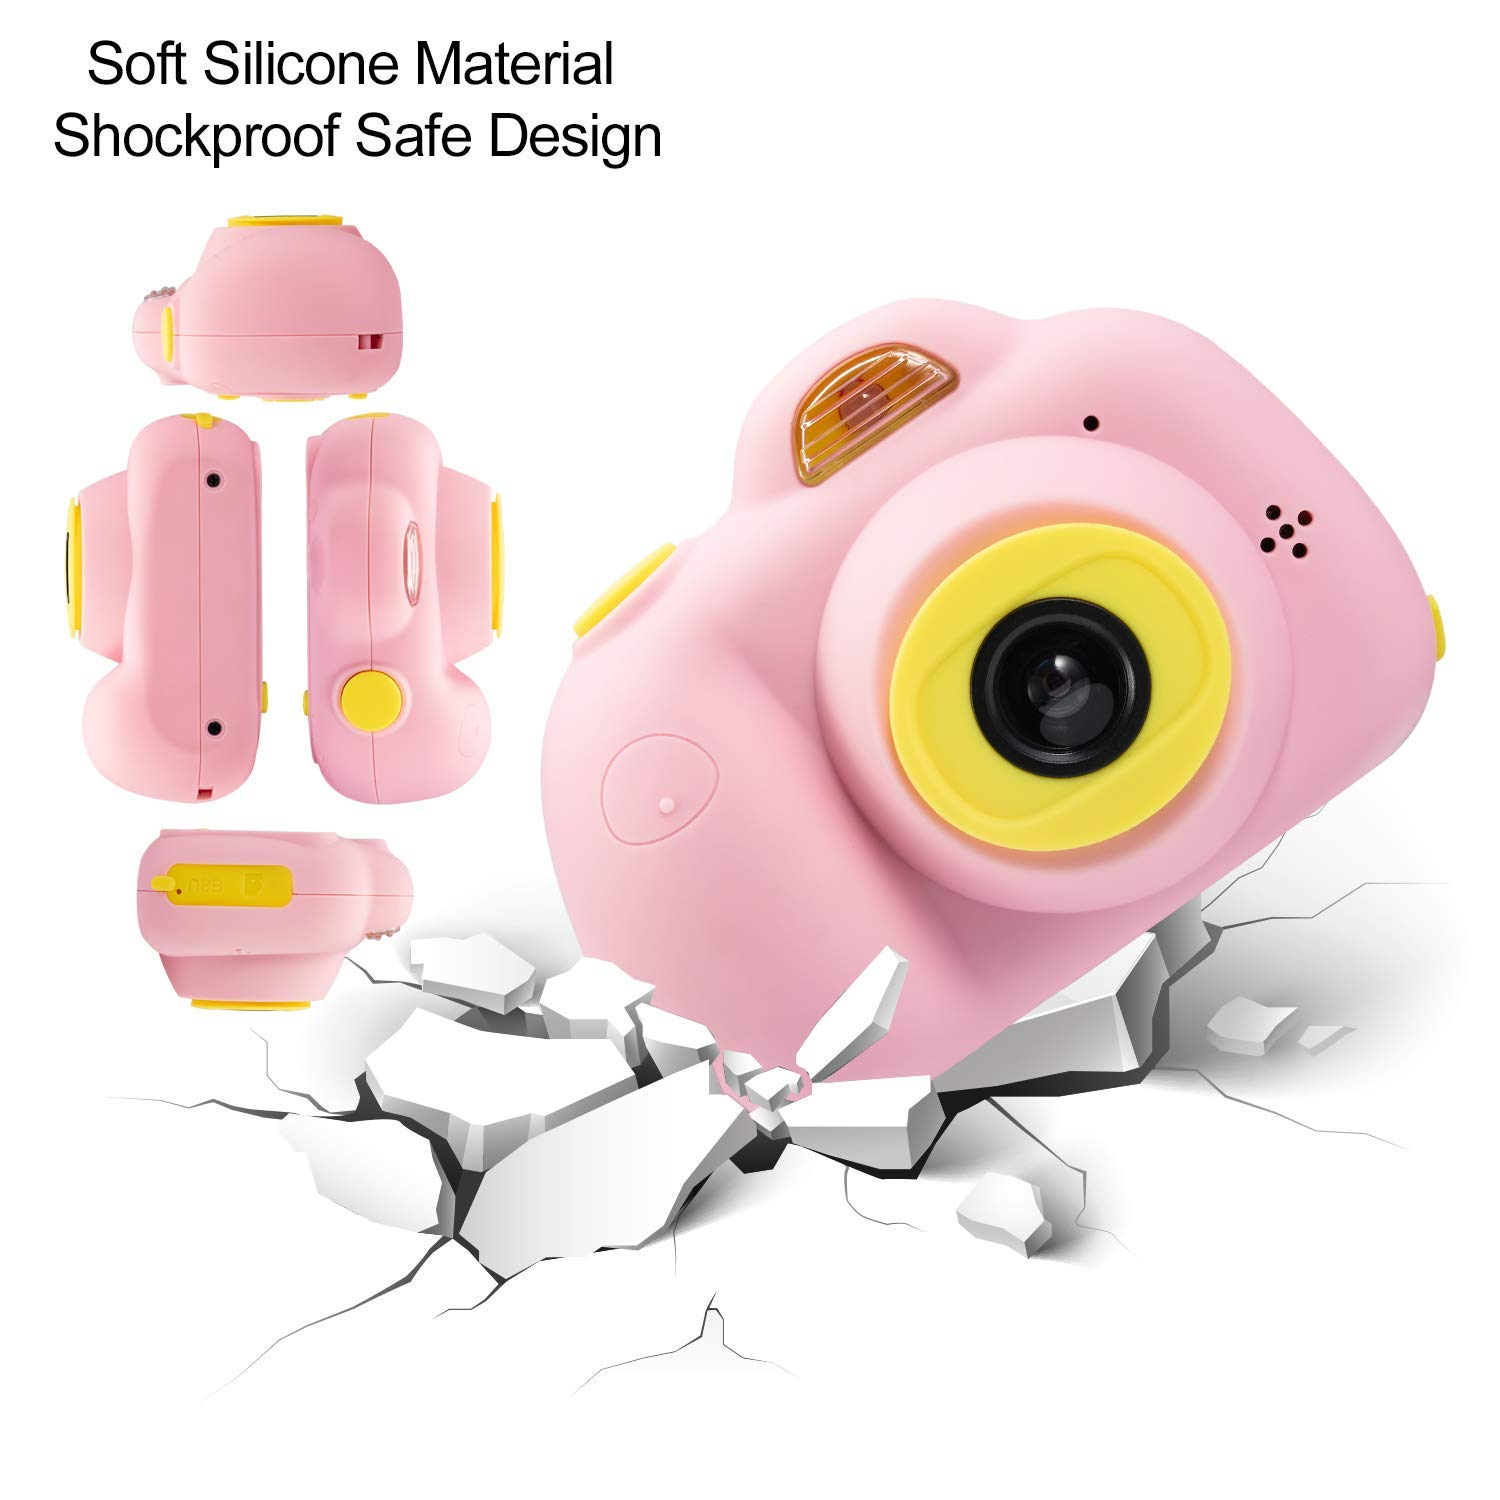 Kids Camera, Dual Cameras 8MP Rechargeable 1080p HD Kids Video Cameras Shockproof Kids Digital Cameras - Best Gift for 4-10 Years Old Girls Boys Party Outdoor Play 16GB TF Card Included (Pink) by Egoelife (Image #6)